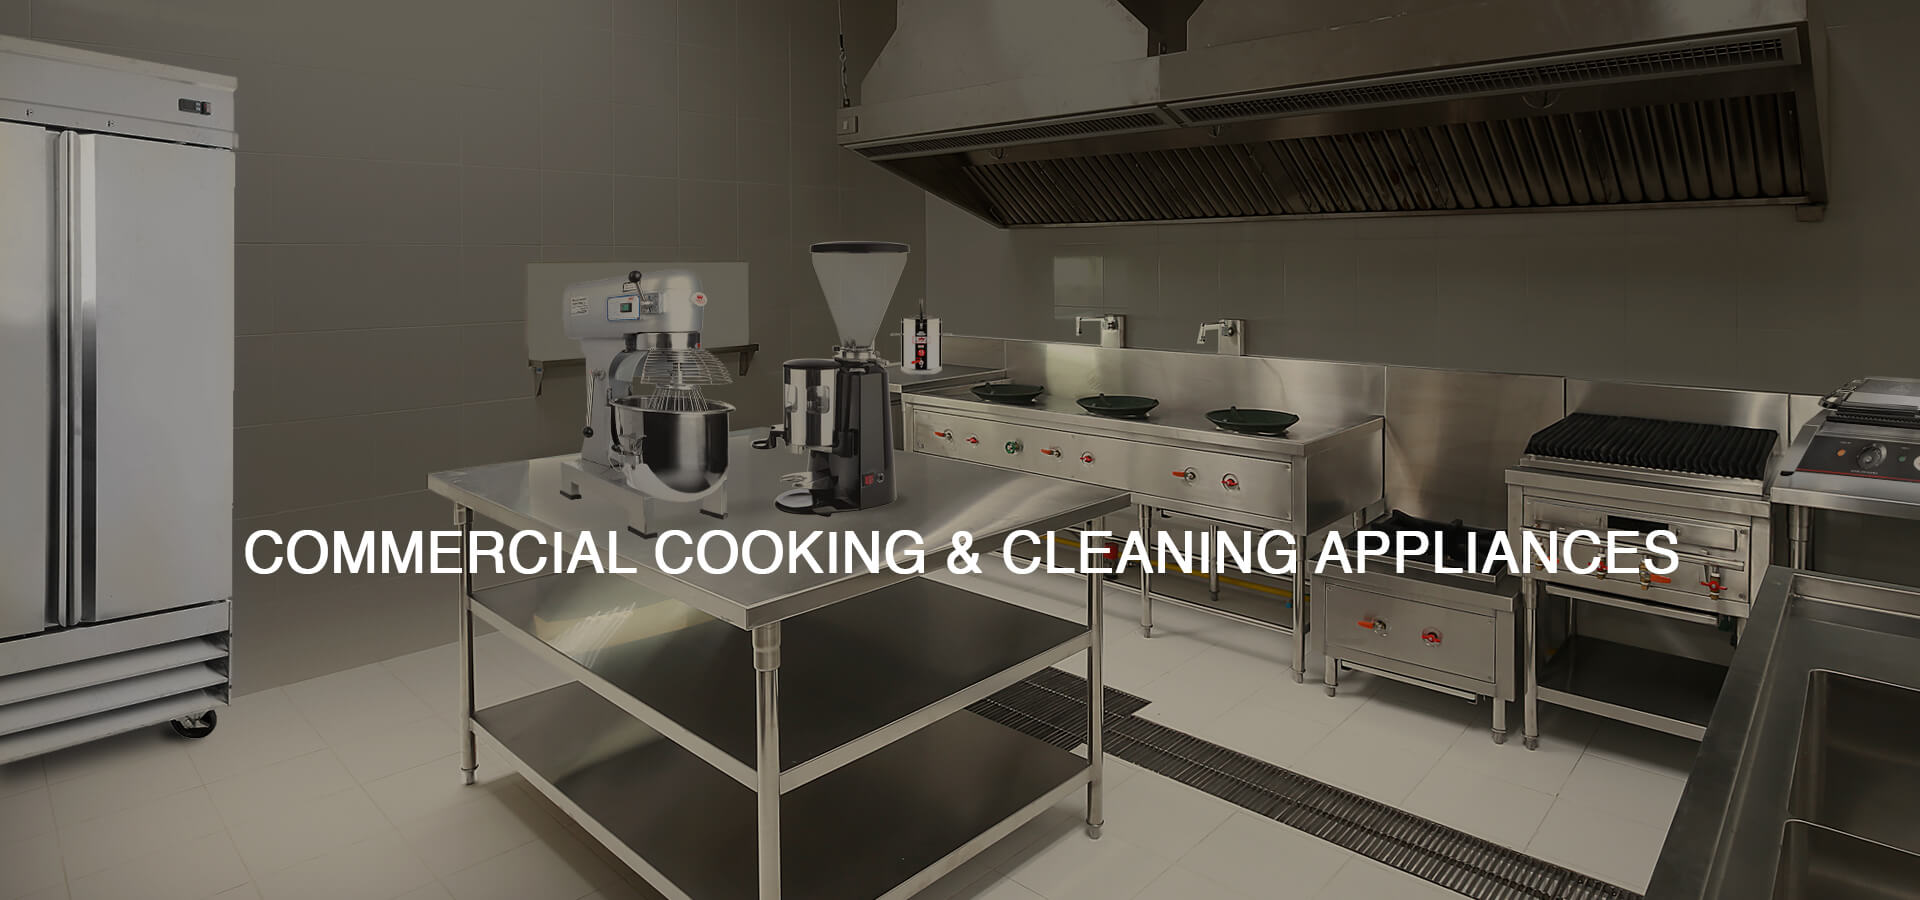 Commercial Cooking & Cleaning Appliances at Caterina